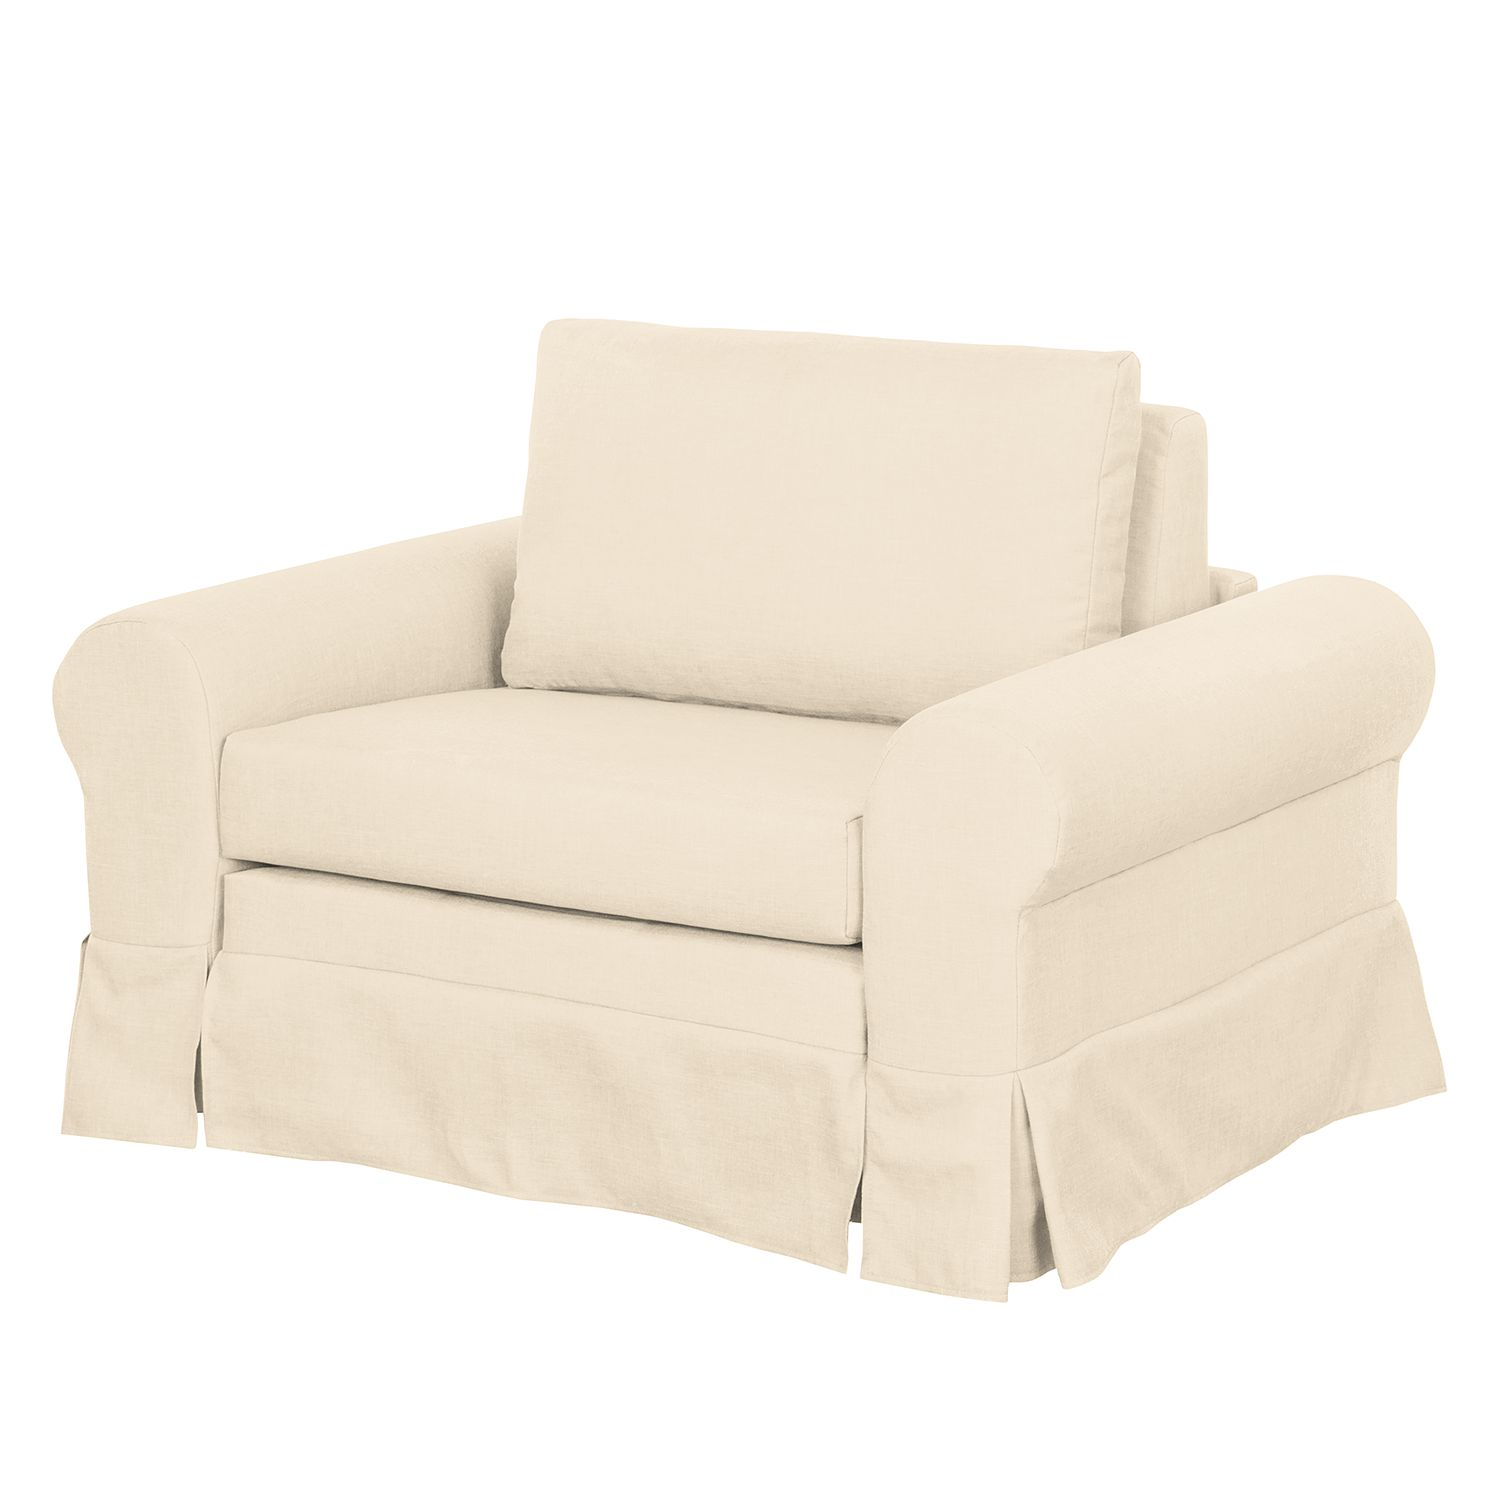 Schlafsessel Couvin - Webstoff - Creme, roomscape